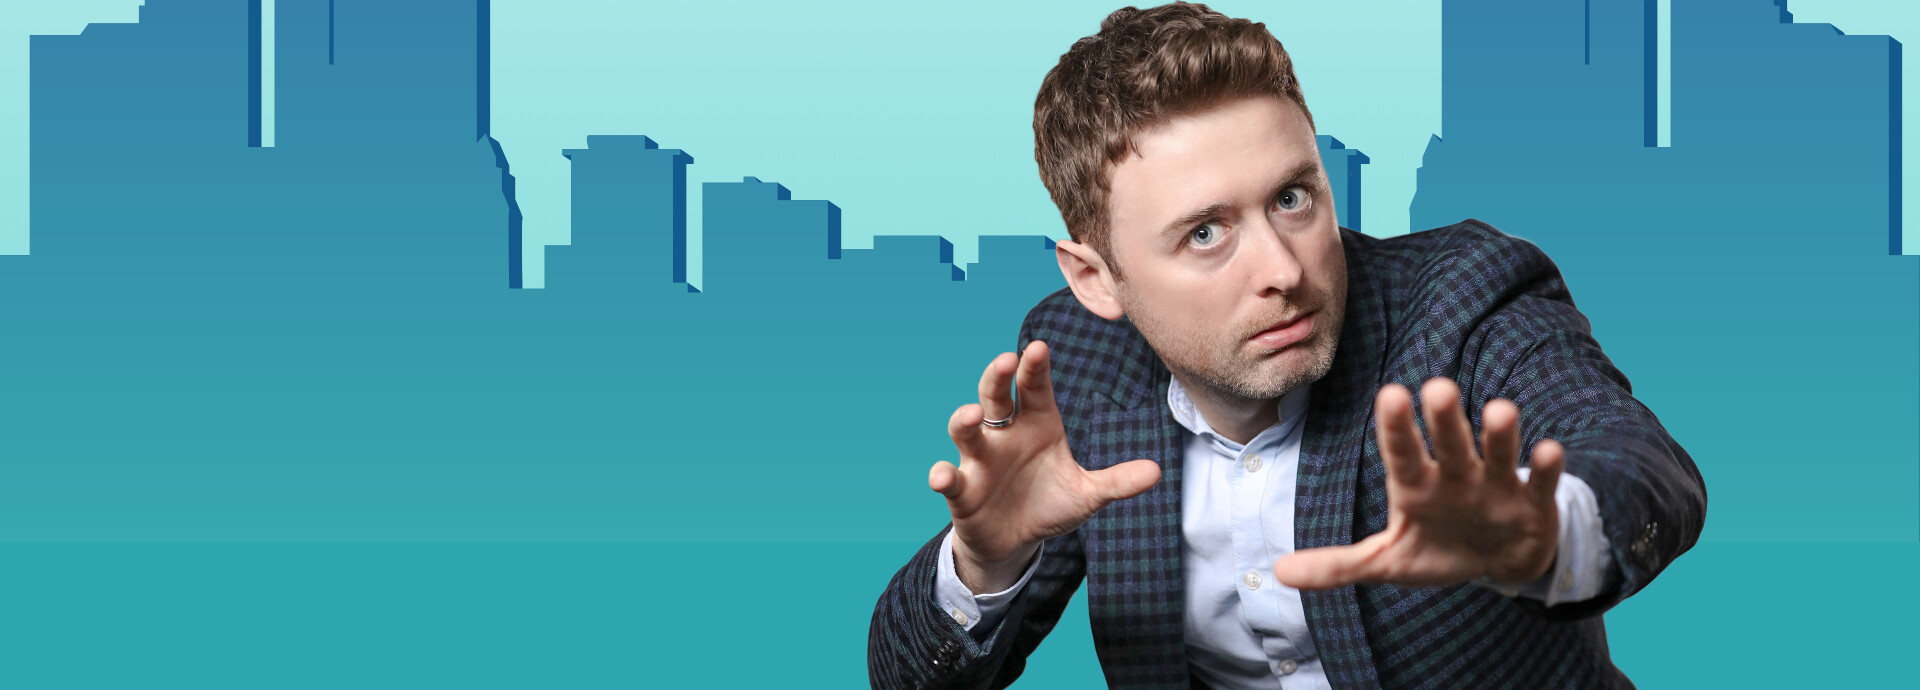 2946-ConorMooreShow-3840x3938_Refresh_Lede.png